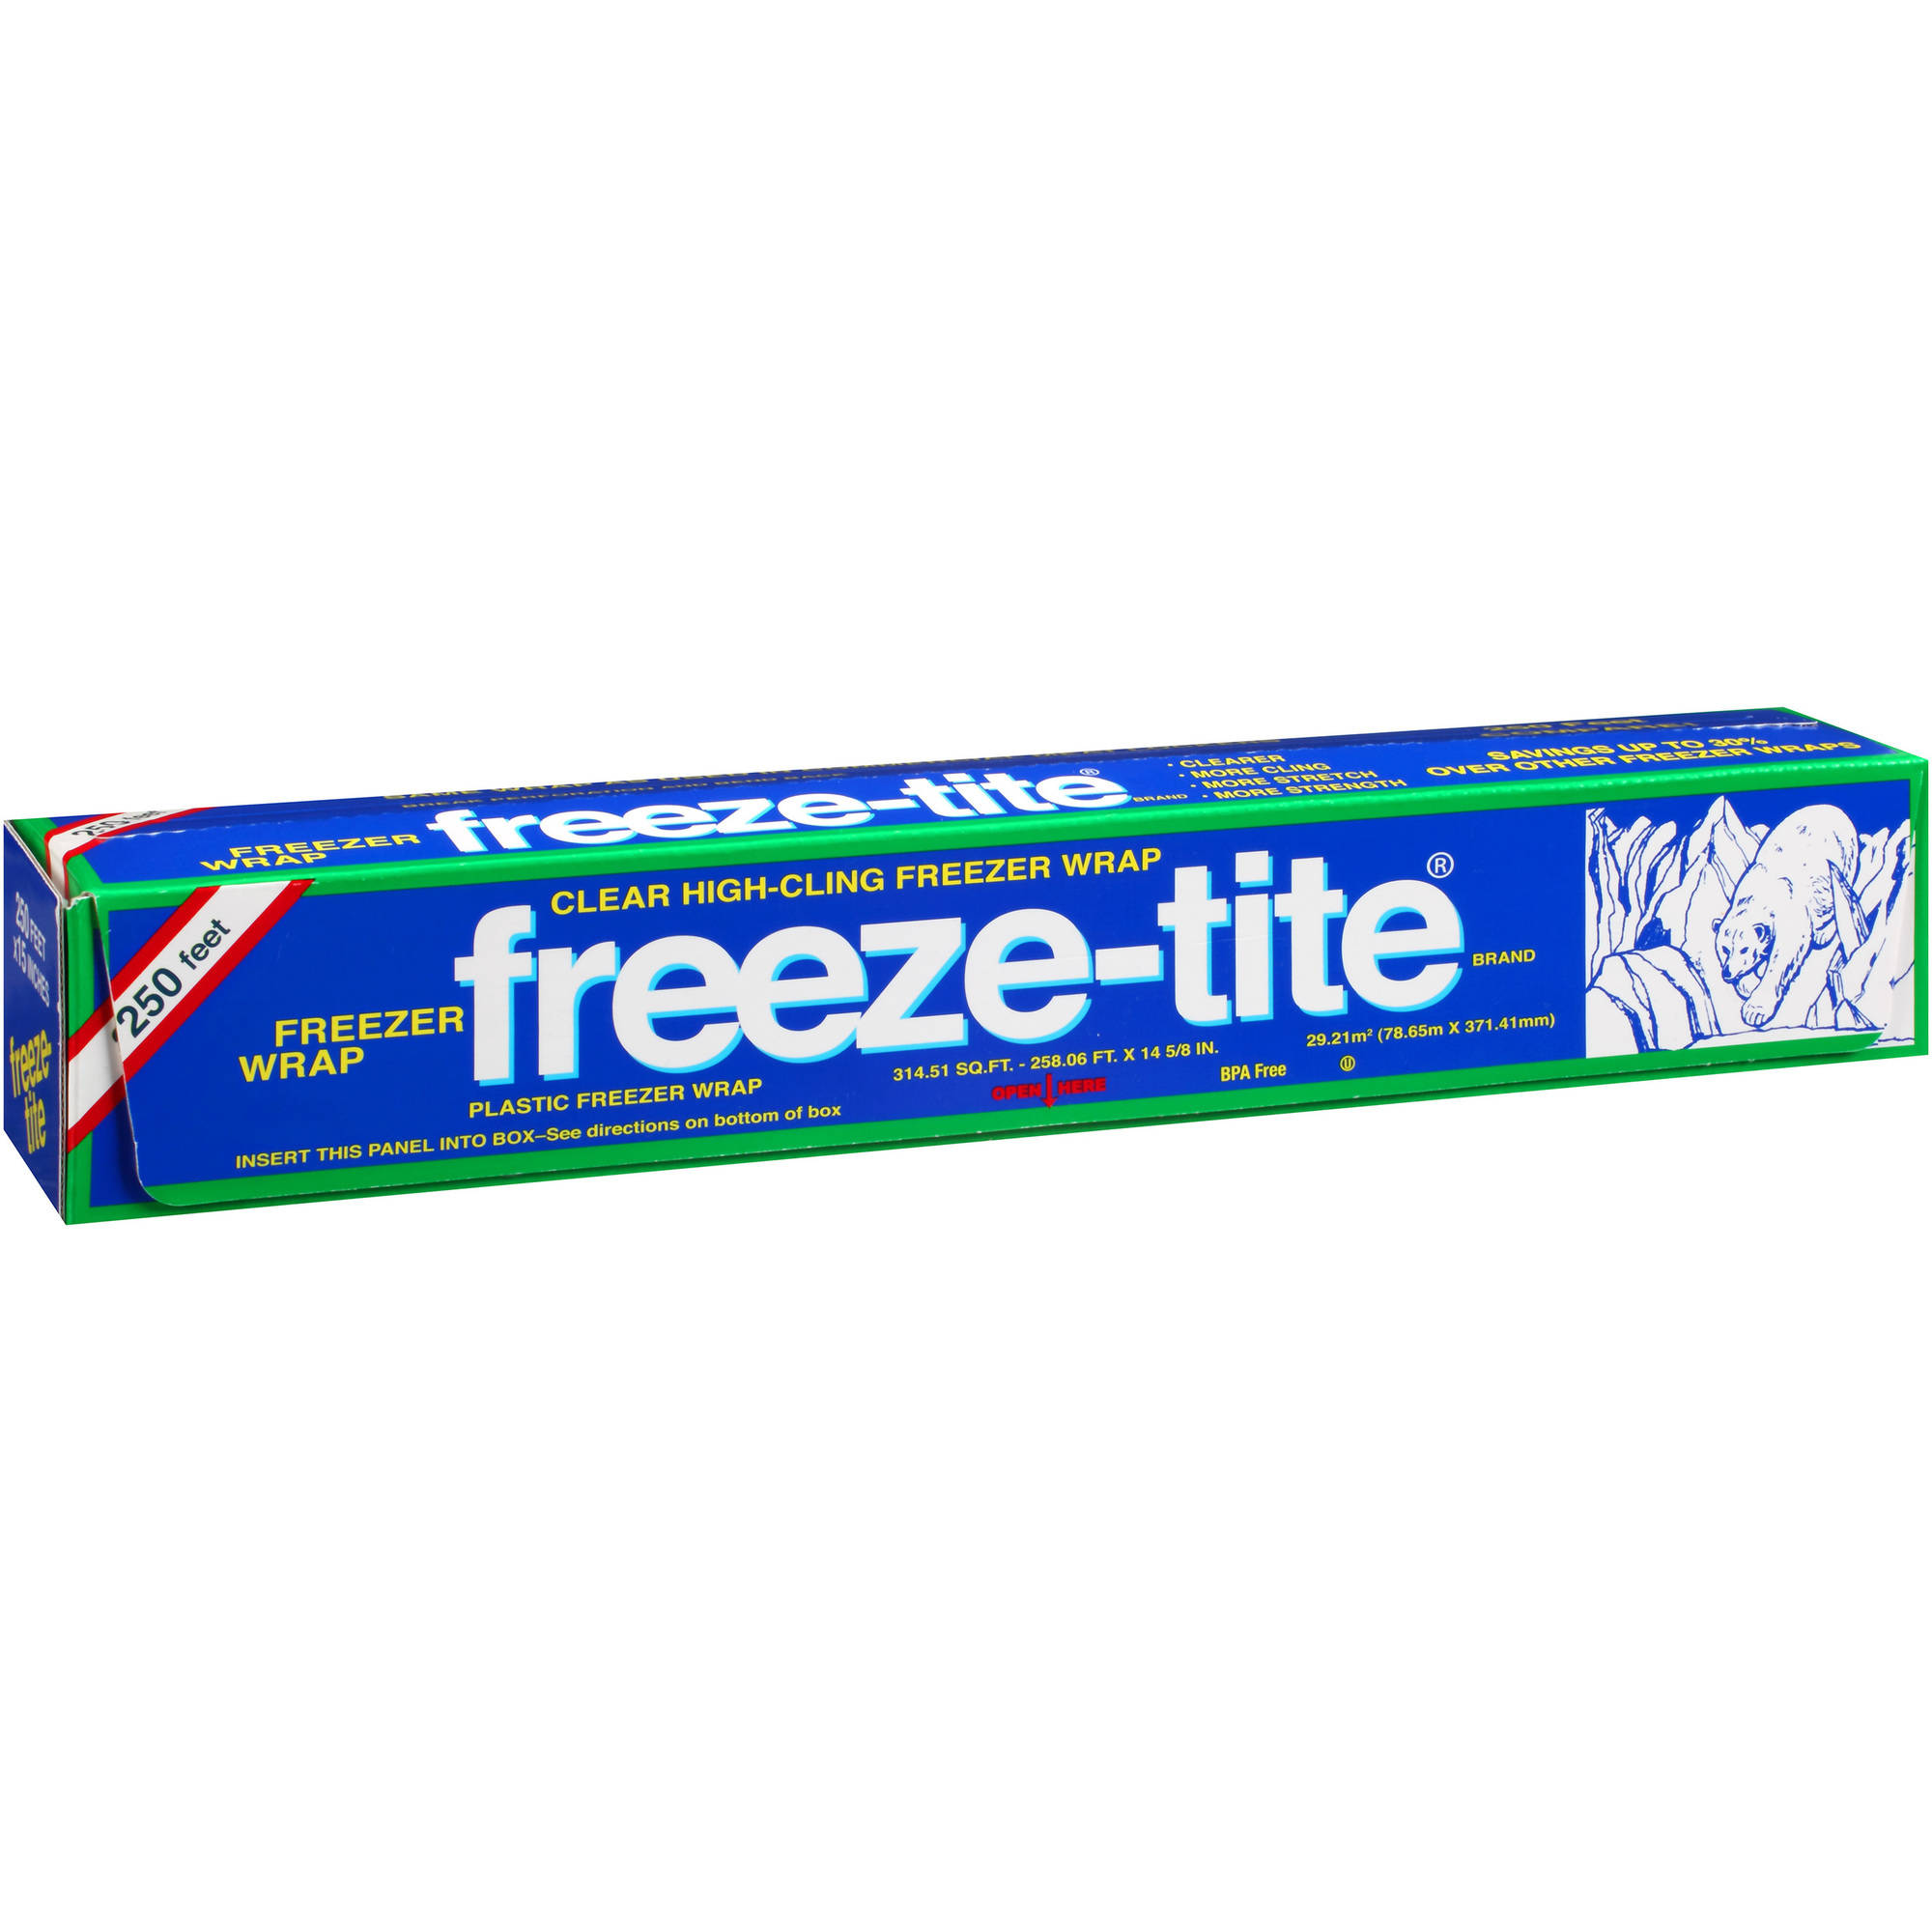 freeze-tite Plastic Freezer Wrap, 314.51 sq ft